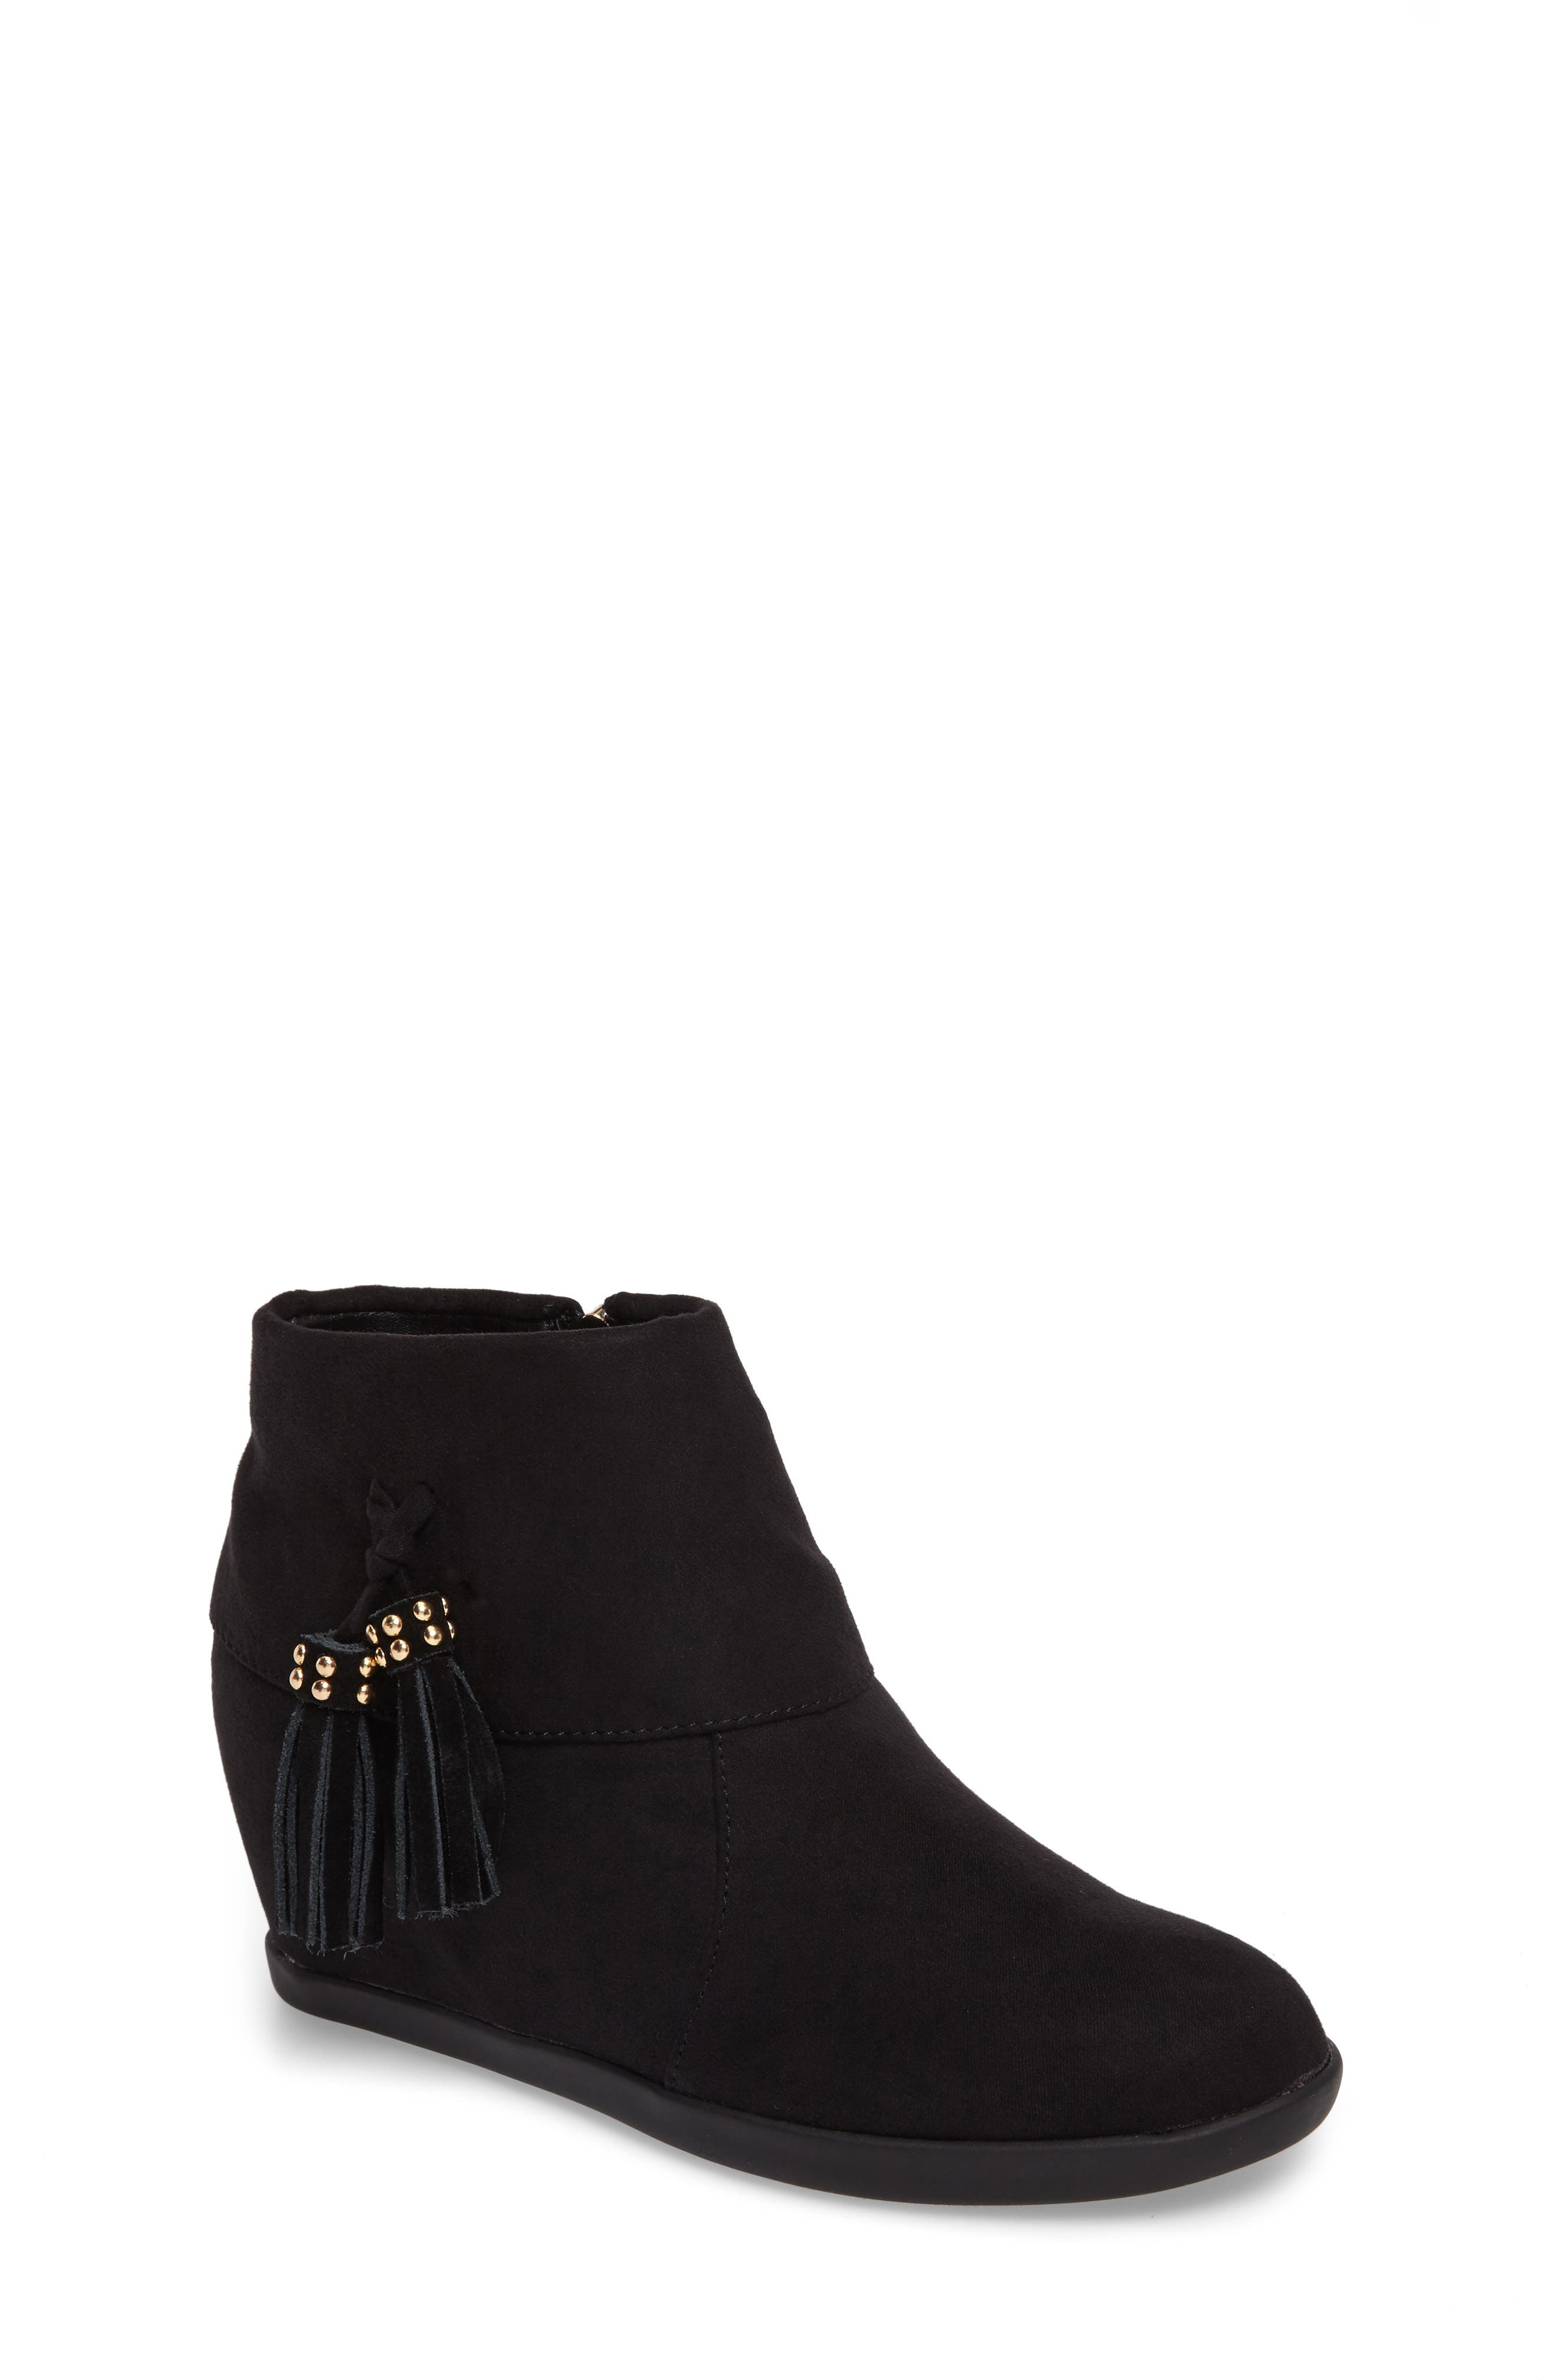 Valentina Cuff Concealed Wedge Bootie,                         Main,                         color, Black